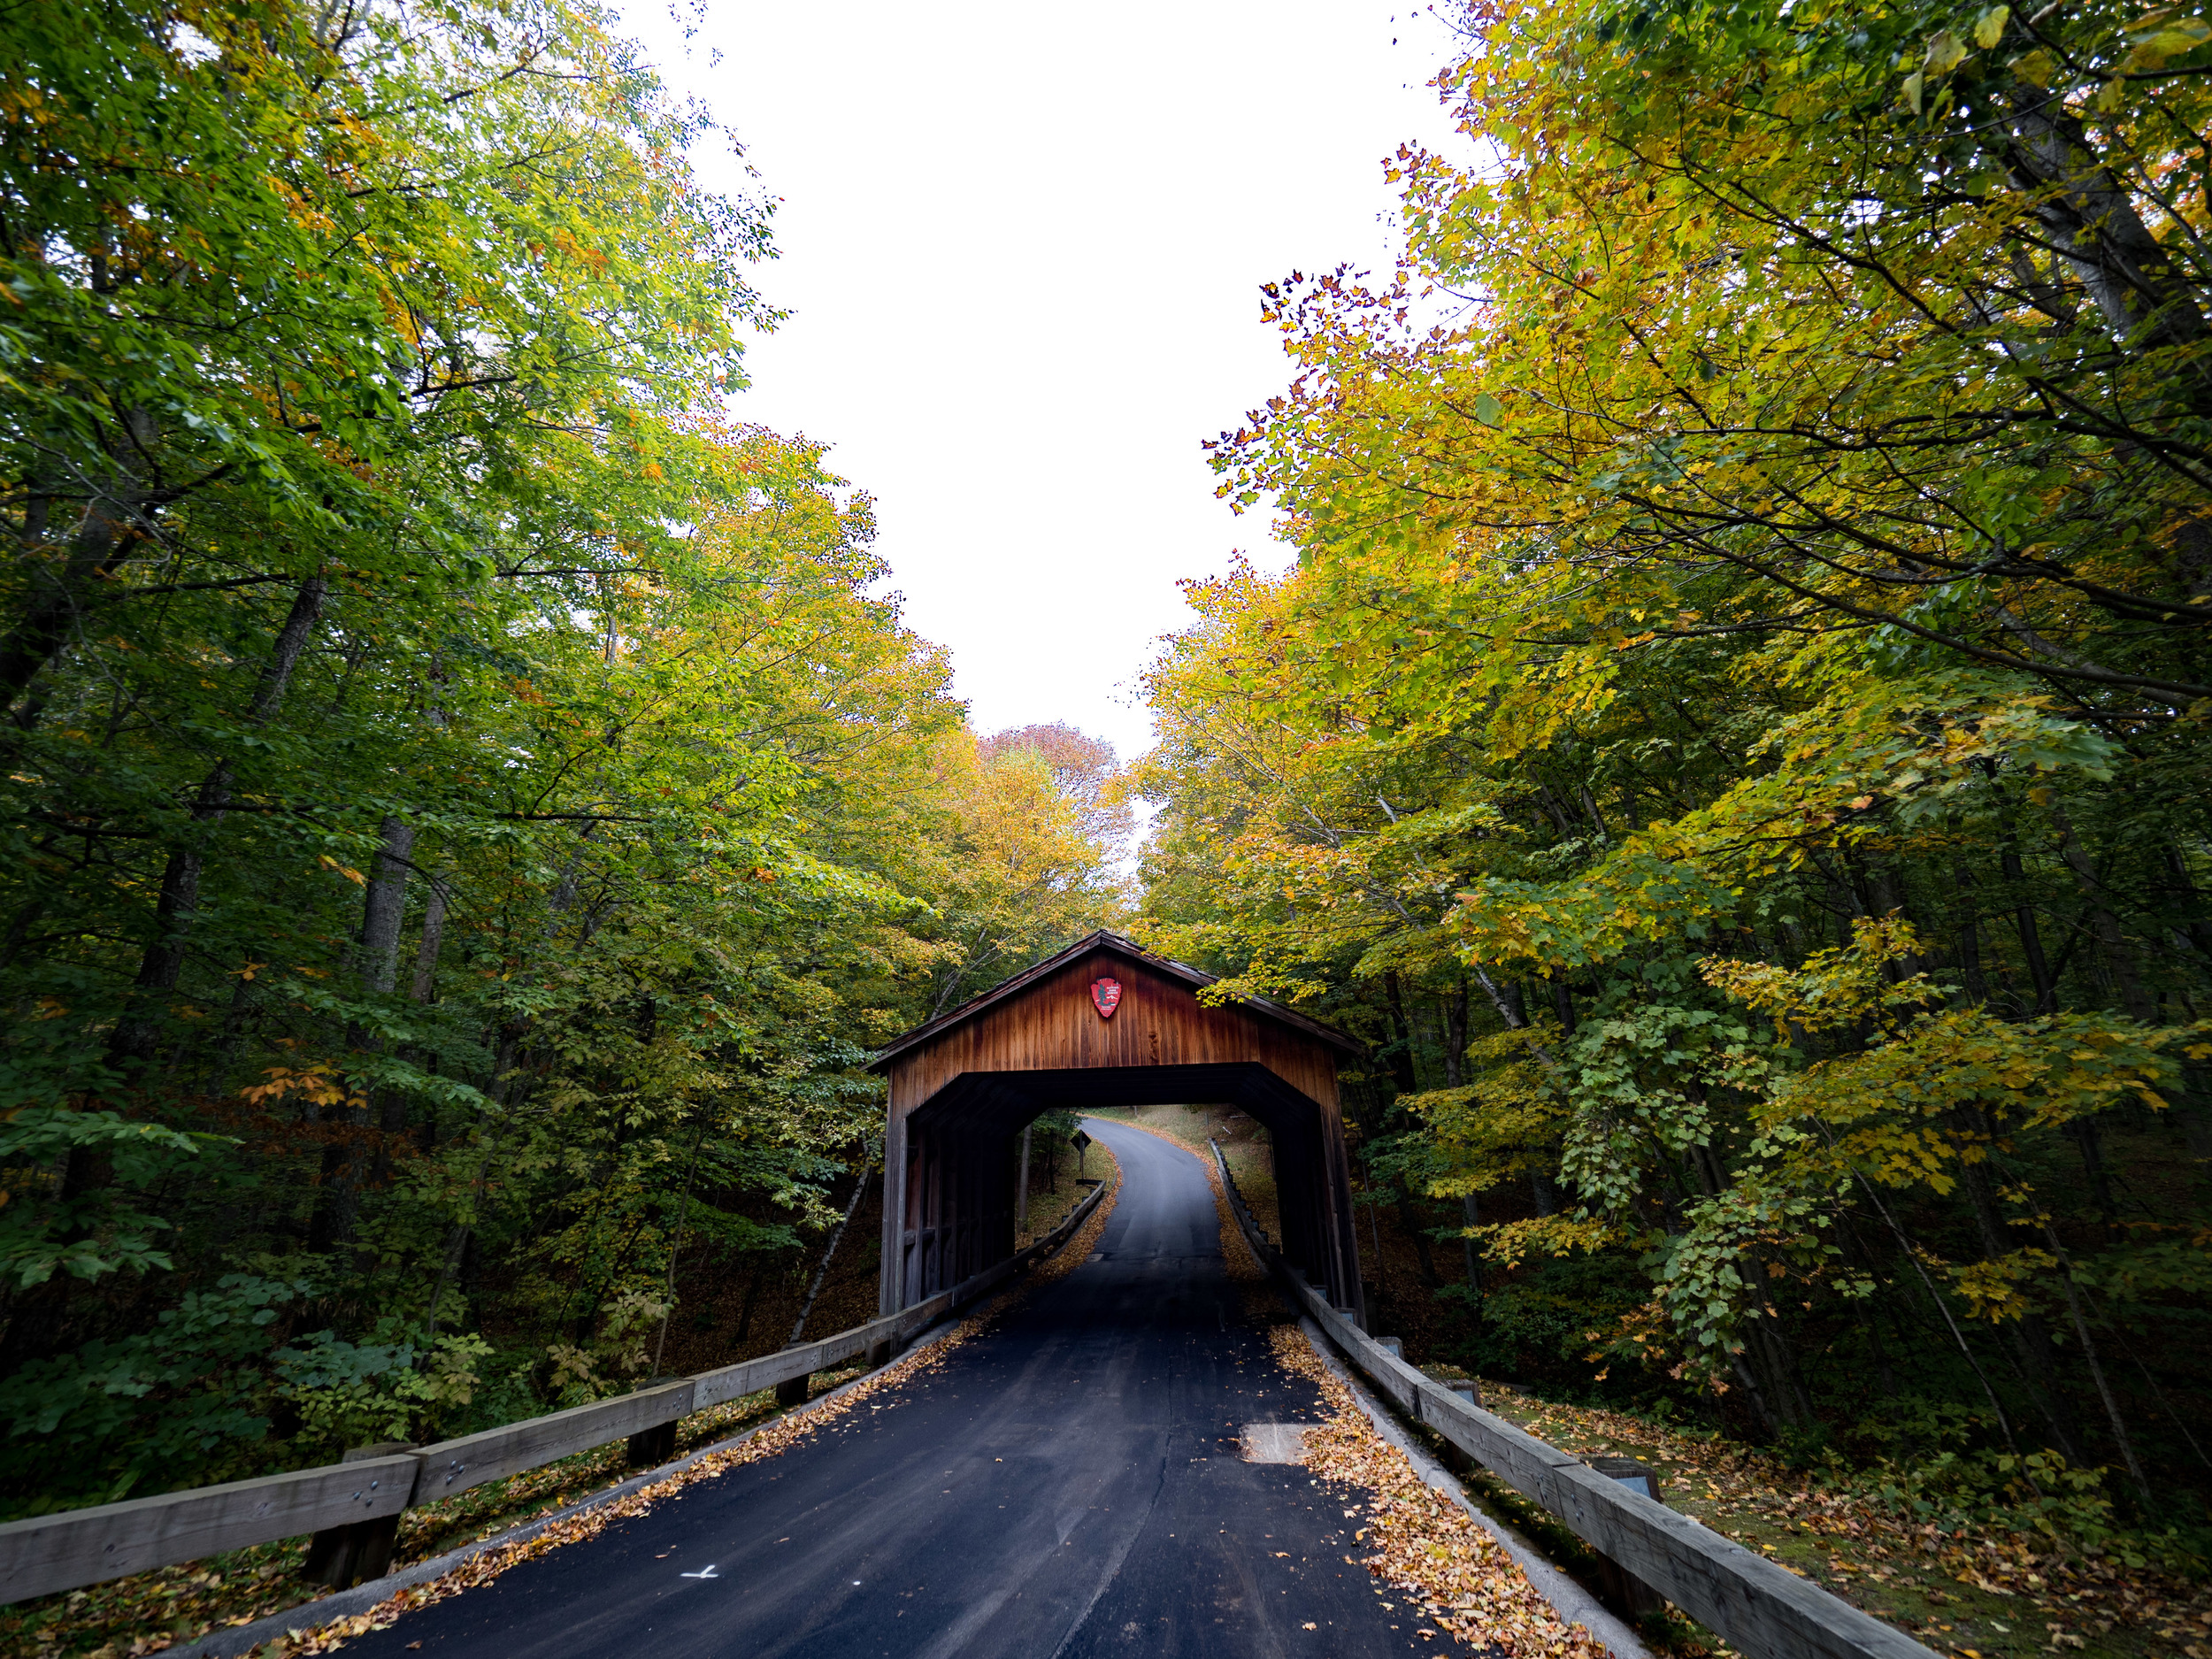 The entrance to Sleeping Bear National park is the Pierce Stocking Drive. You are greeted with this quaint wooden covered bridge and tree lined drive.